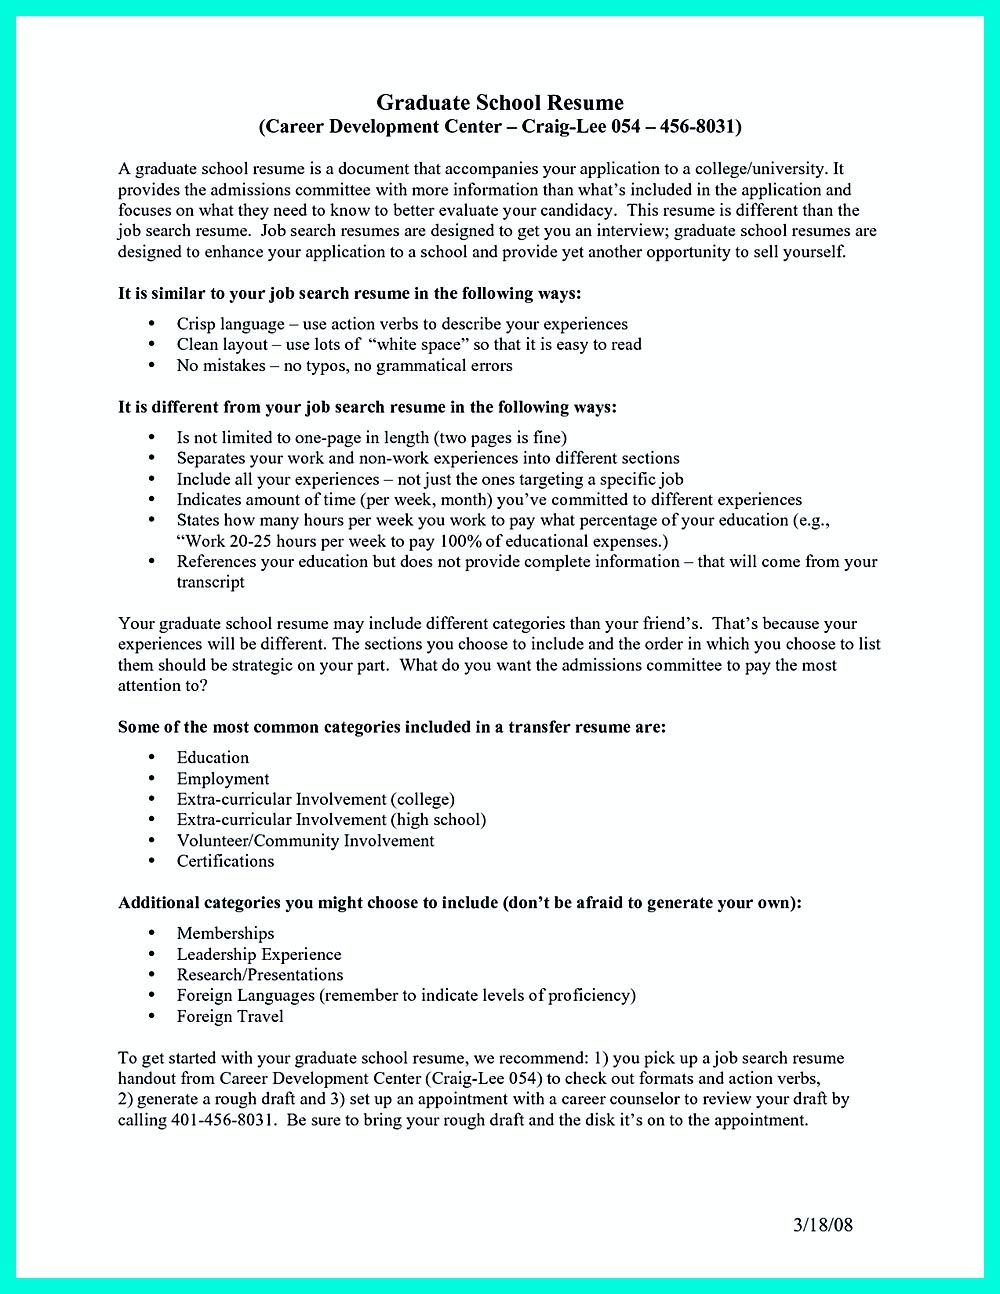 How To Write A Curriculum Vitae For Psychology Grad School Psychology Phd Clinical Graduate Admissions Drexel For High School Students It Is Sometimes Troublesome To